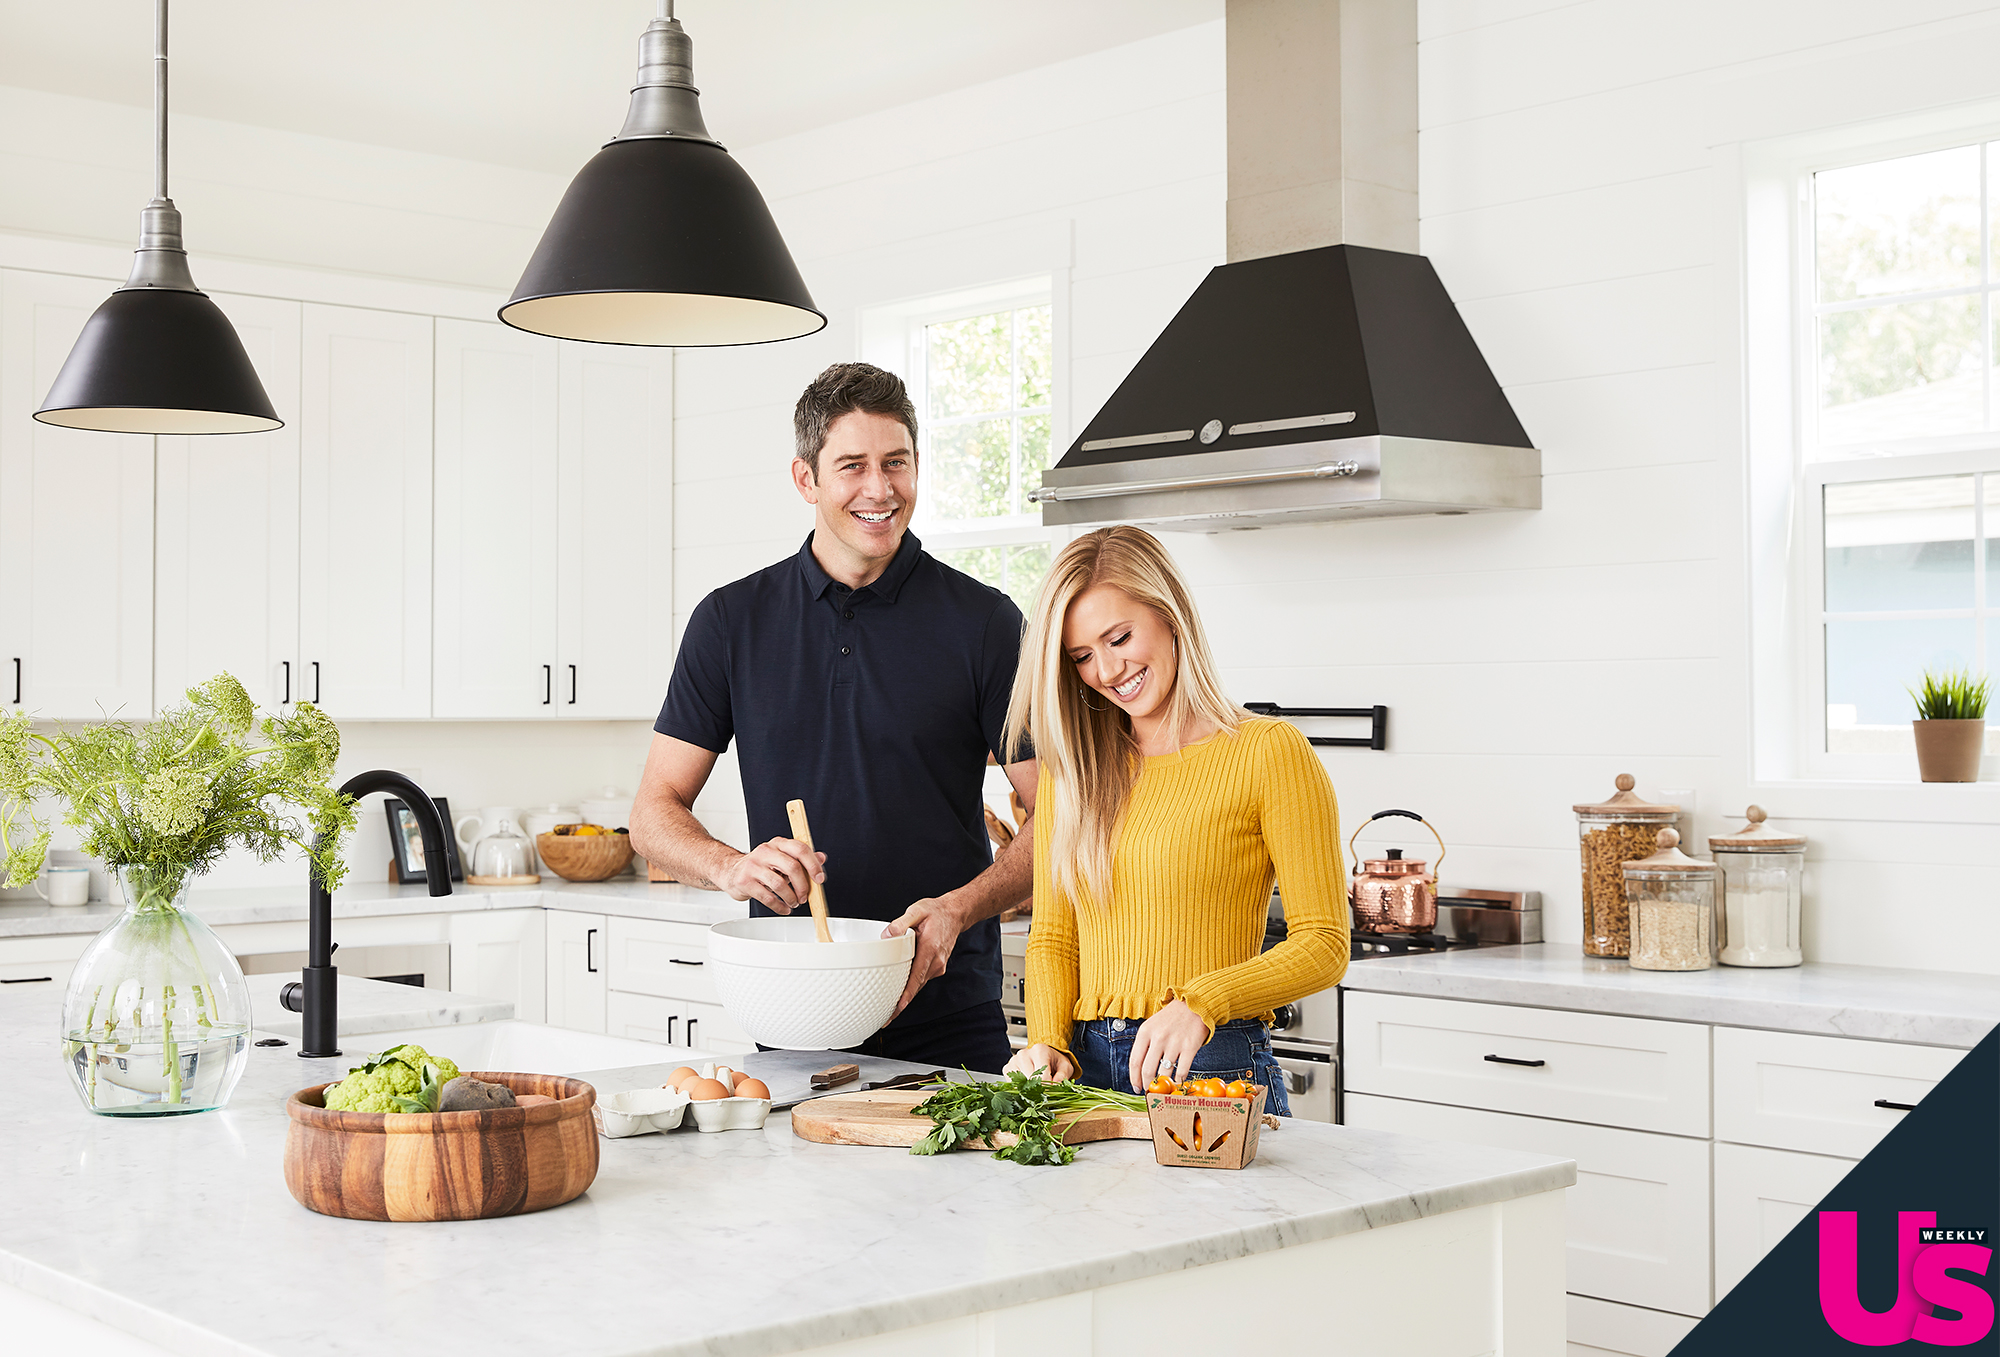 """Arie Luyendyk Jr Lauren Burnham New Home - Says the race car driver, """"We're looking forward to Thanksgiving this year because we'll be hosting our families for the first time."""""""